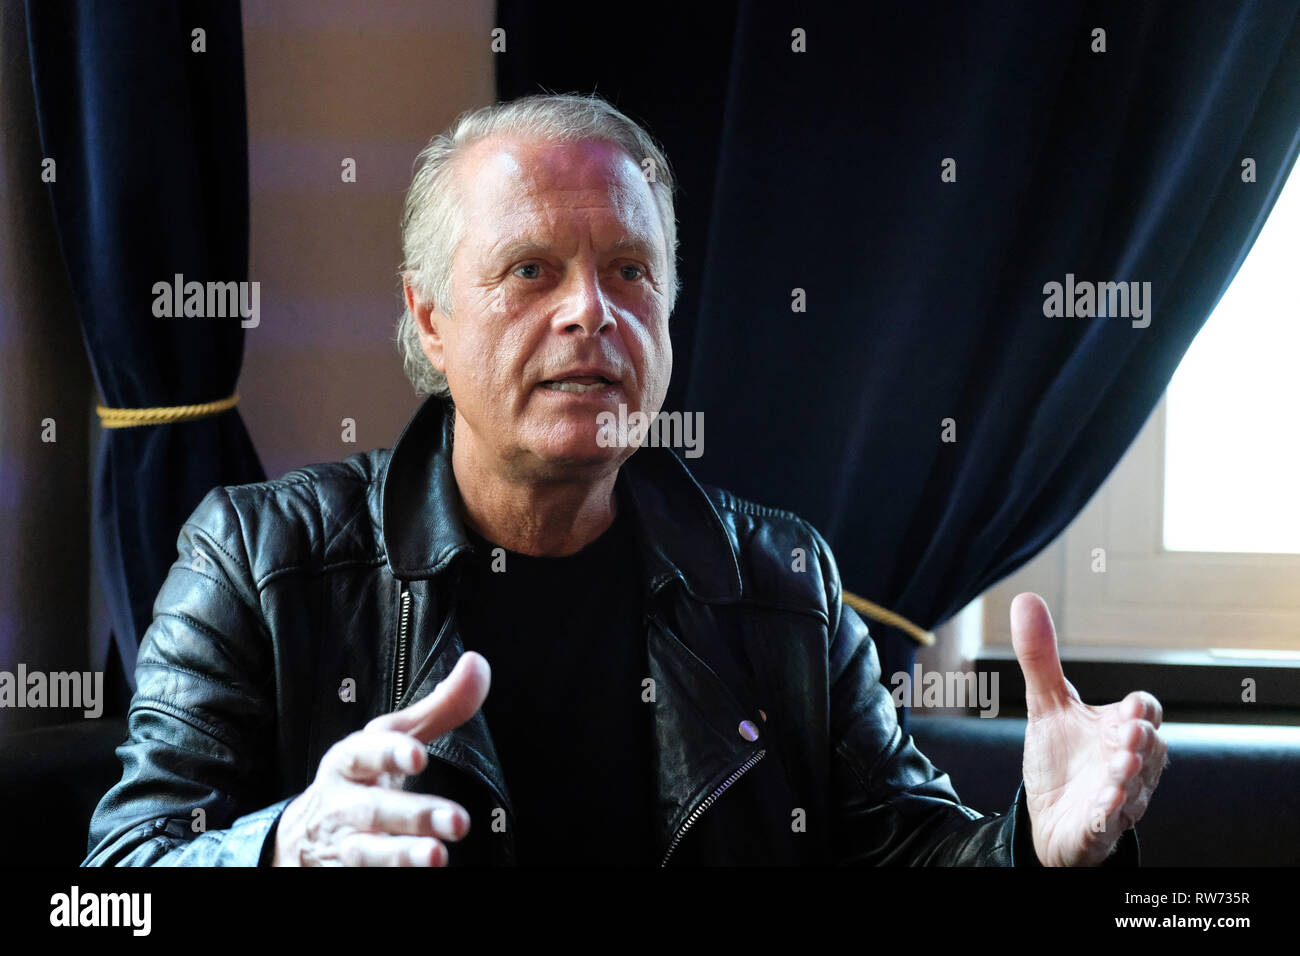 Dresden, Germany. 15th Feb, 2019. Jörg Stempel, former head of the GDR record company Amiga, speaks at the press event in the boulevard theatre. The premiere of the play 'The Legend of Hot Summer' will take place there on 10.03.2019. The theatre show is about the 'Sound of the East'. Credit: Sebastian Willnow/dpa-Zentralbild/dpa/Alamy Live News - Stock Image